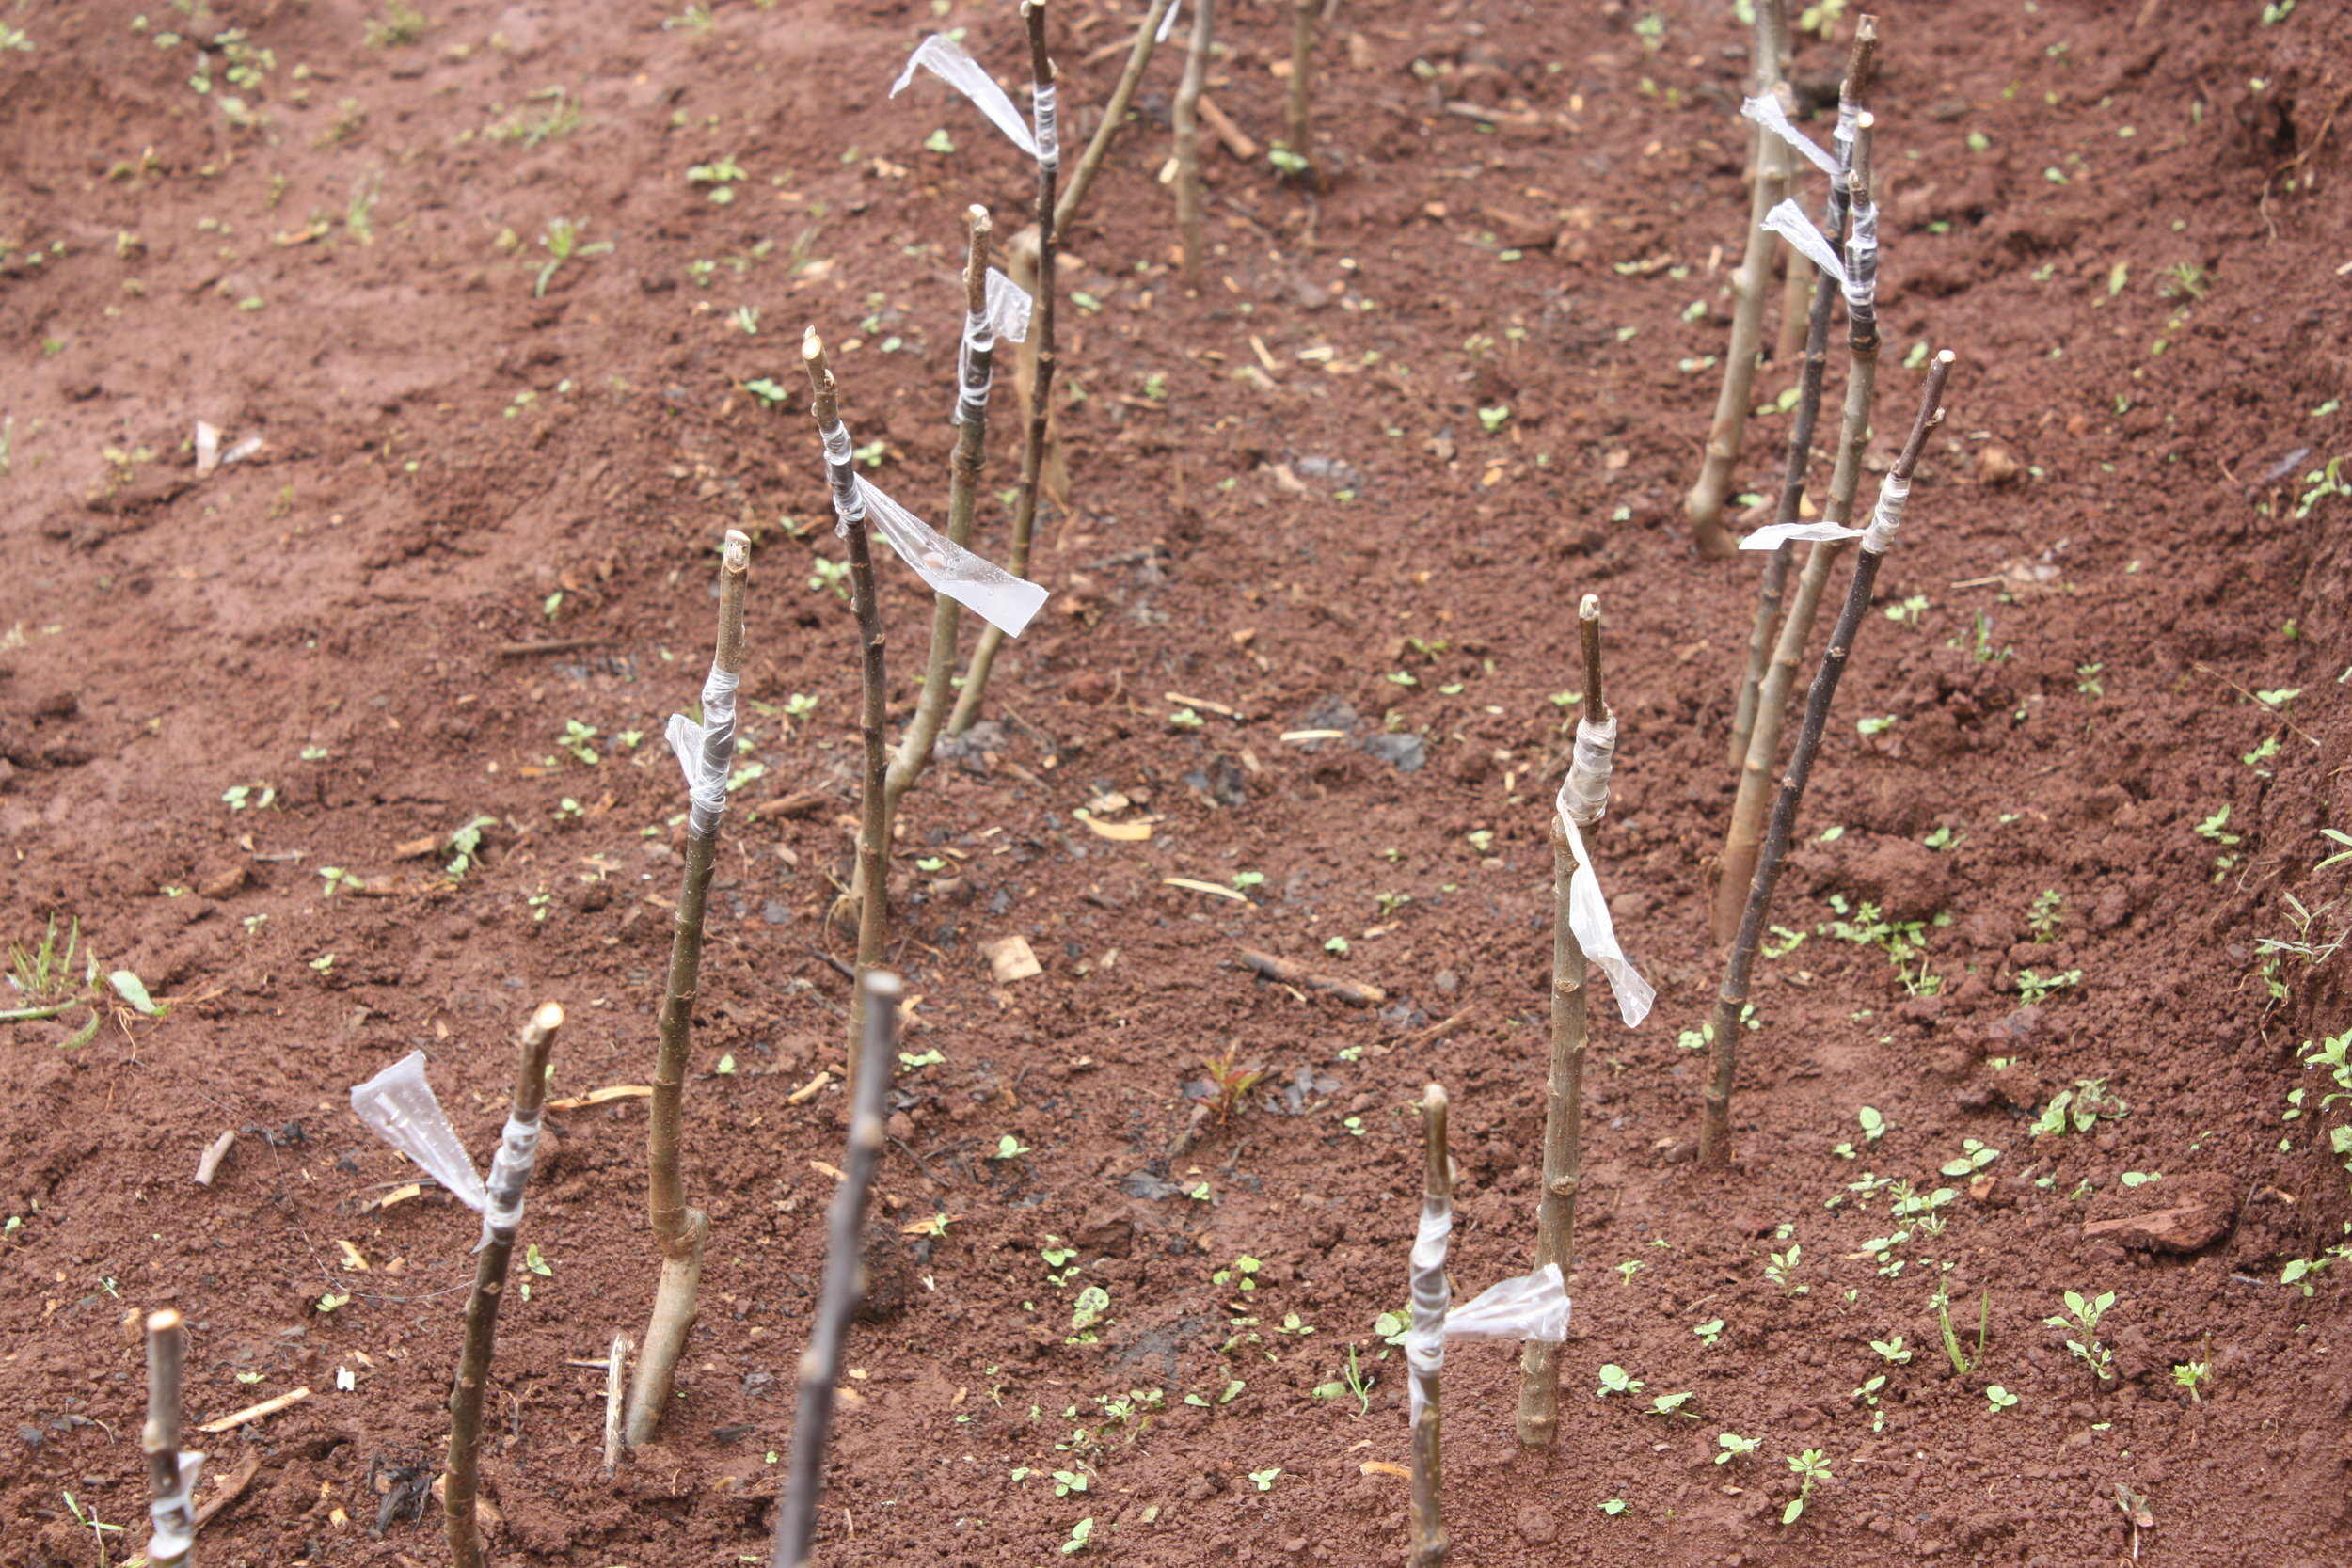 Freshly grafted seedlings